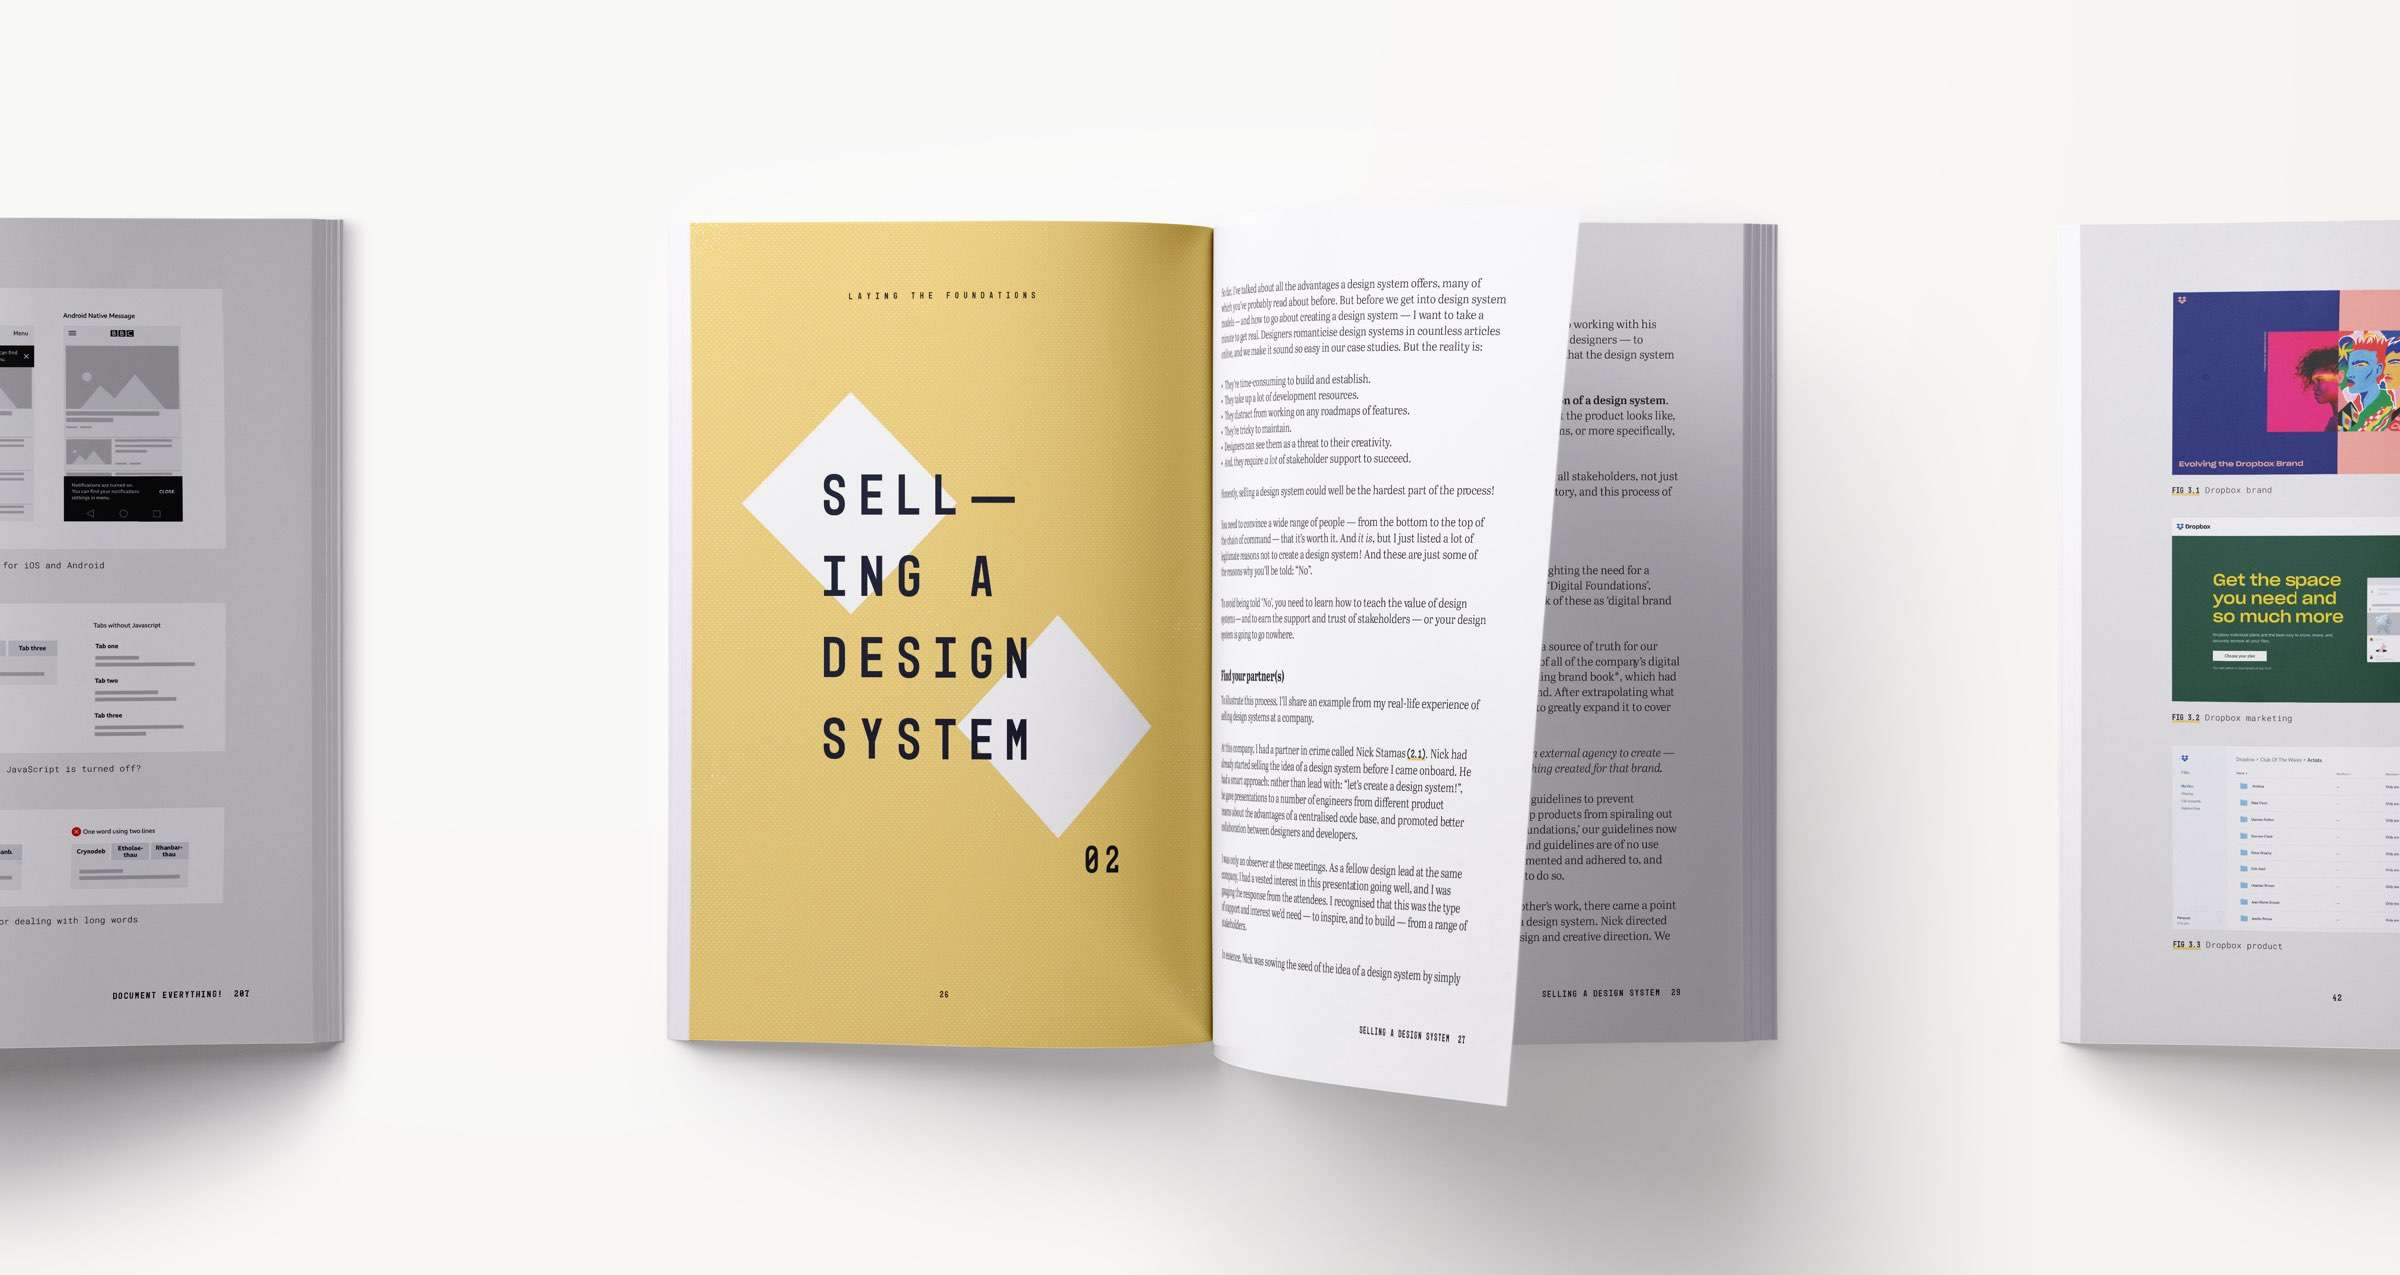 A design systems book spread showing content related to selling a design system at your company and within your design team and organisation